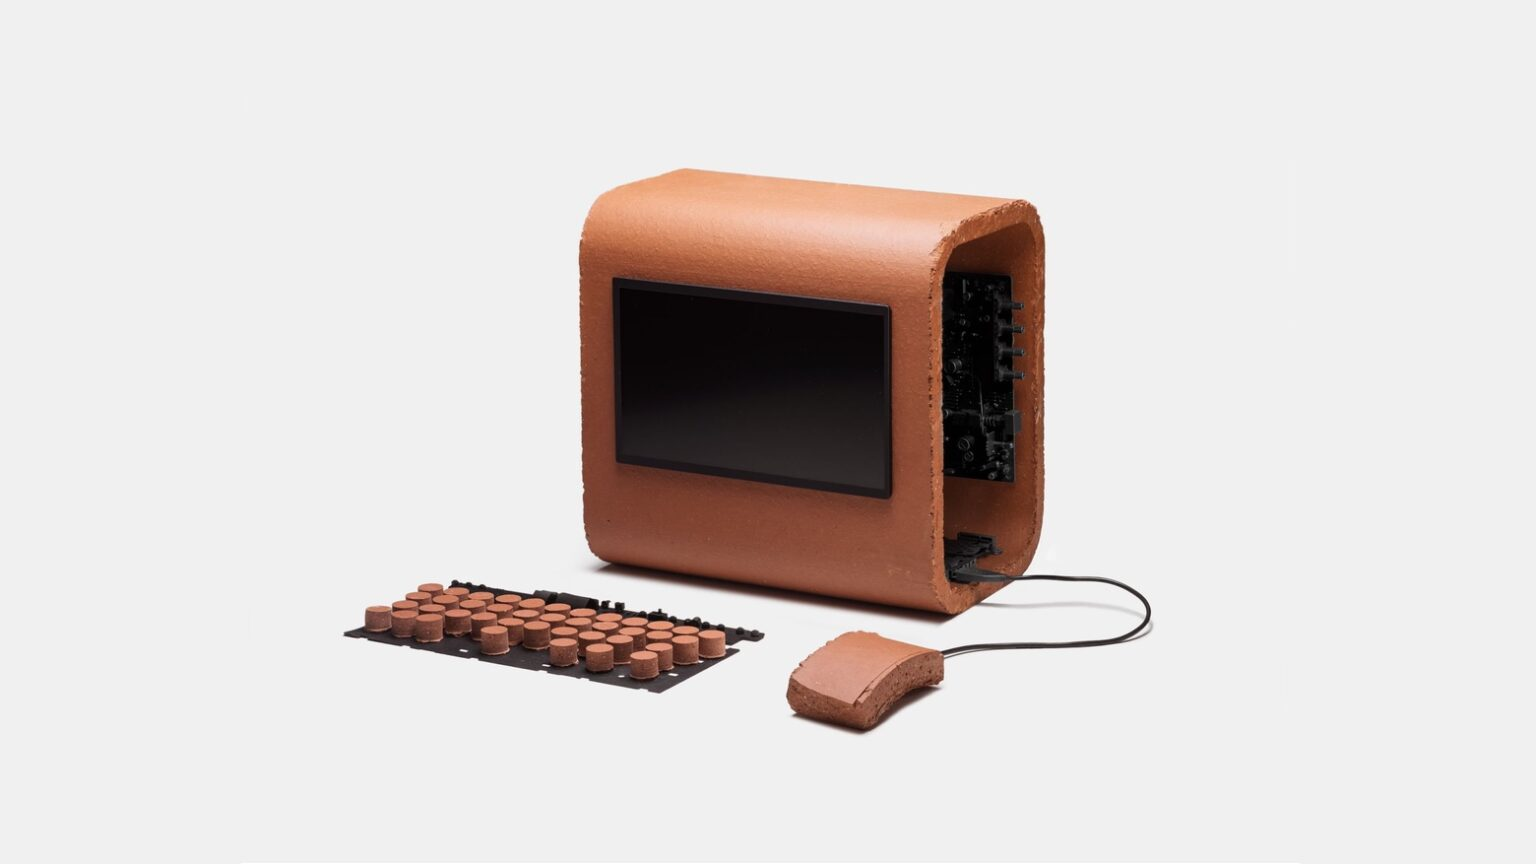 This concept Mac is made of sandstone.